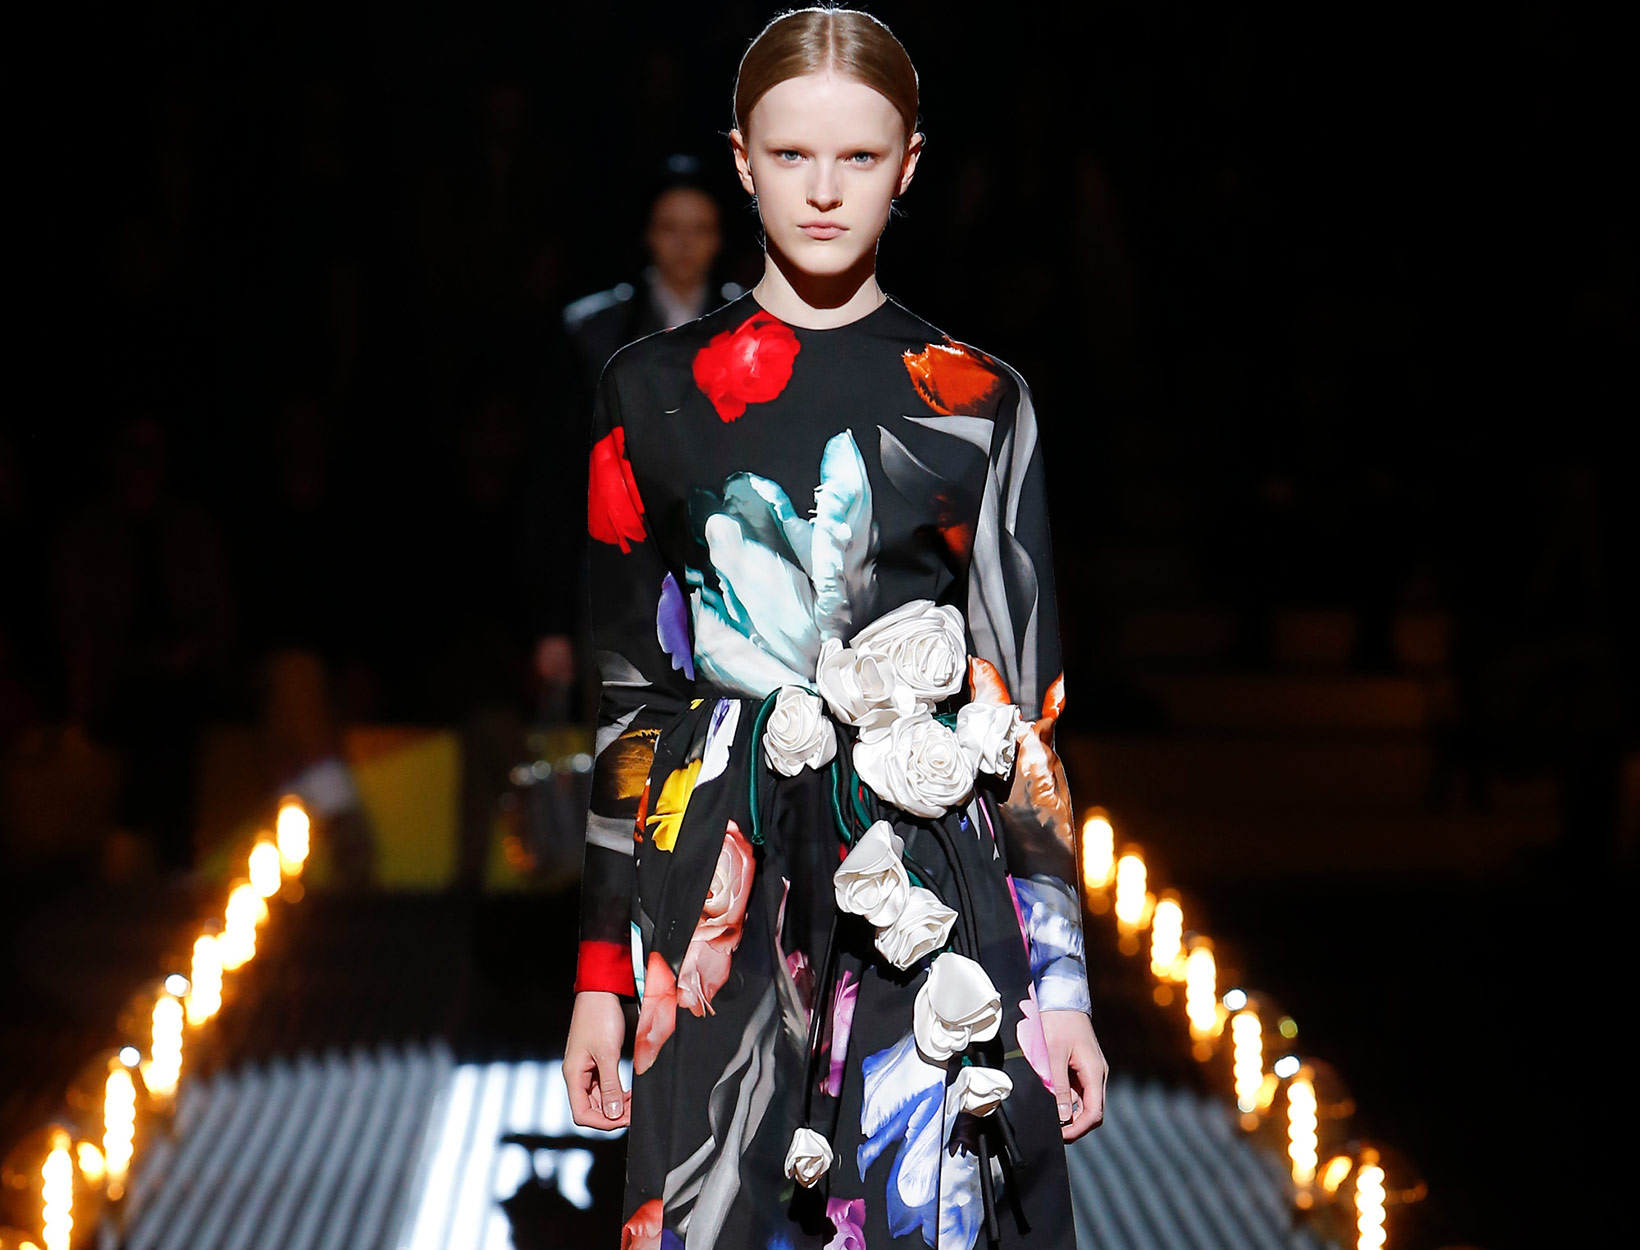 runway model in bold florals